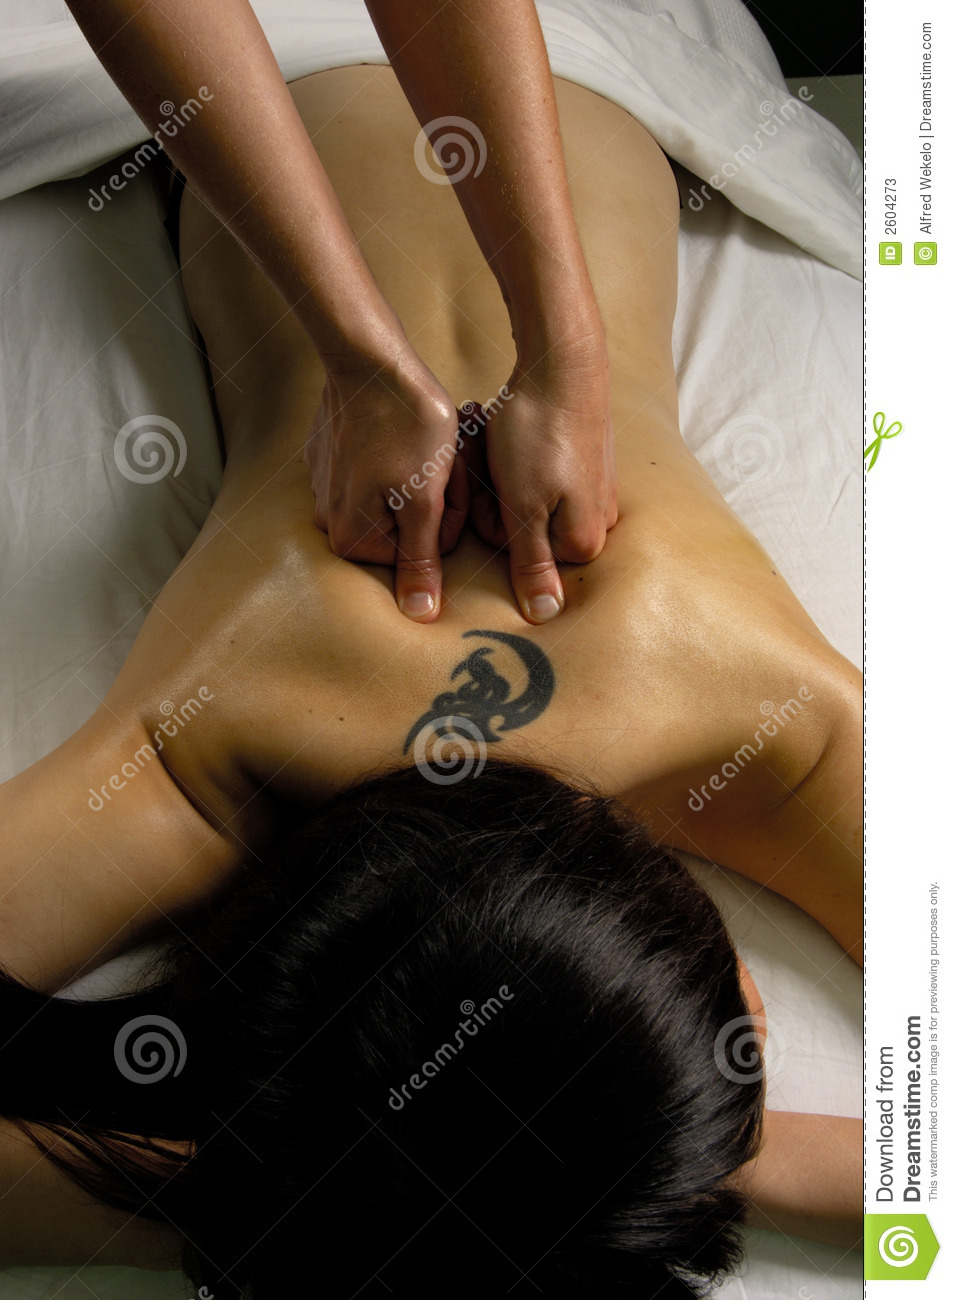 Spa full body massage stock photos image 2604273 - Salon massage body body paris ...